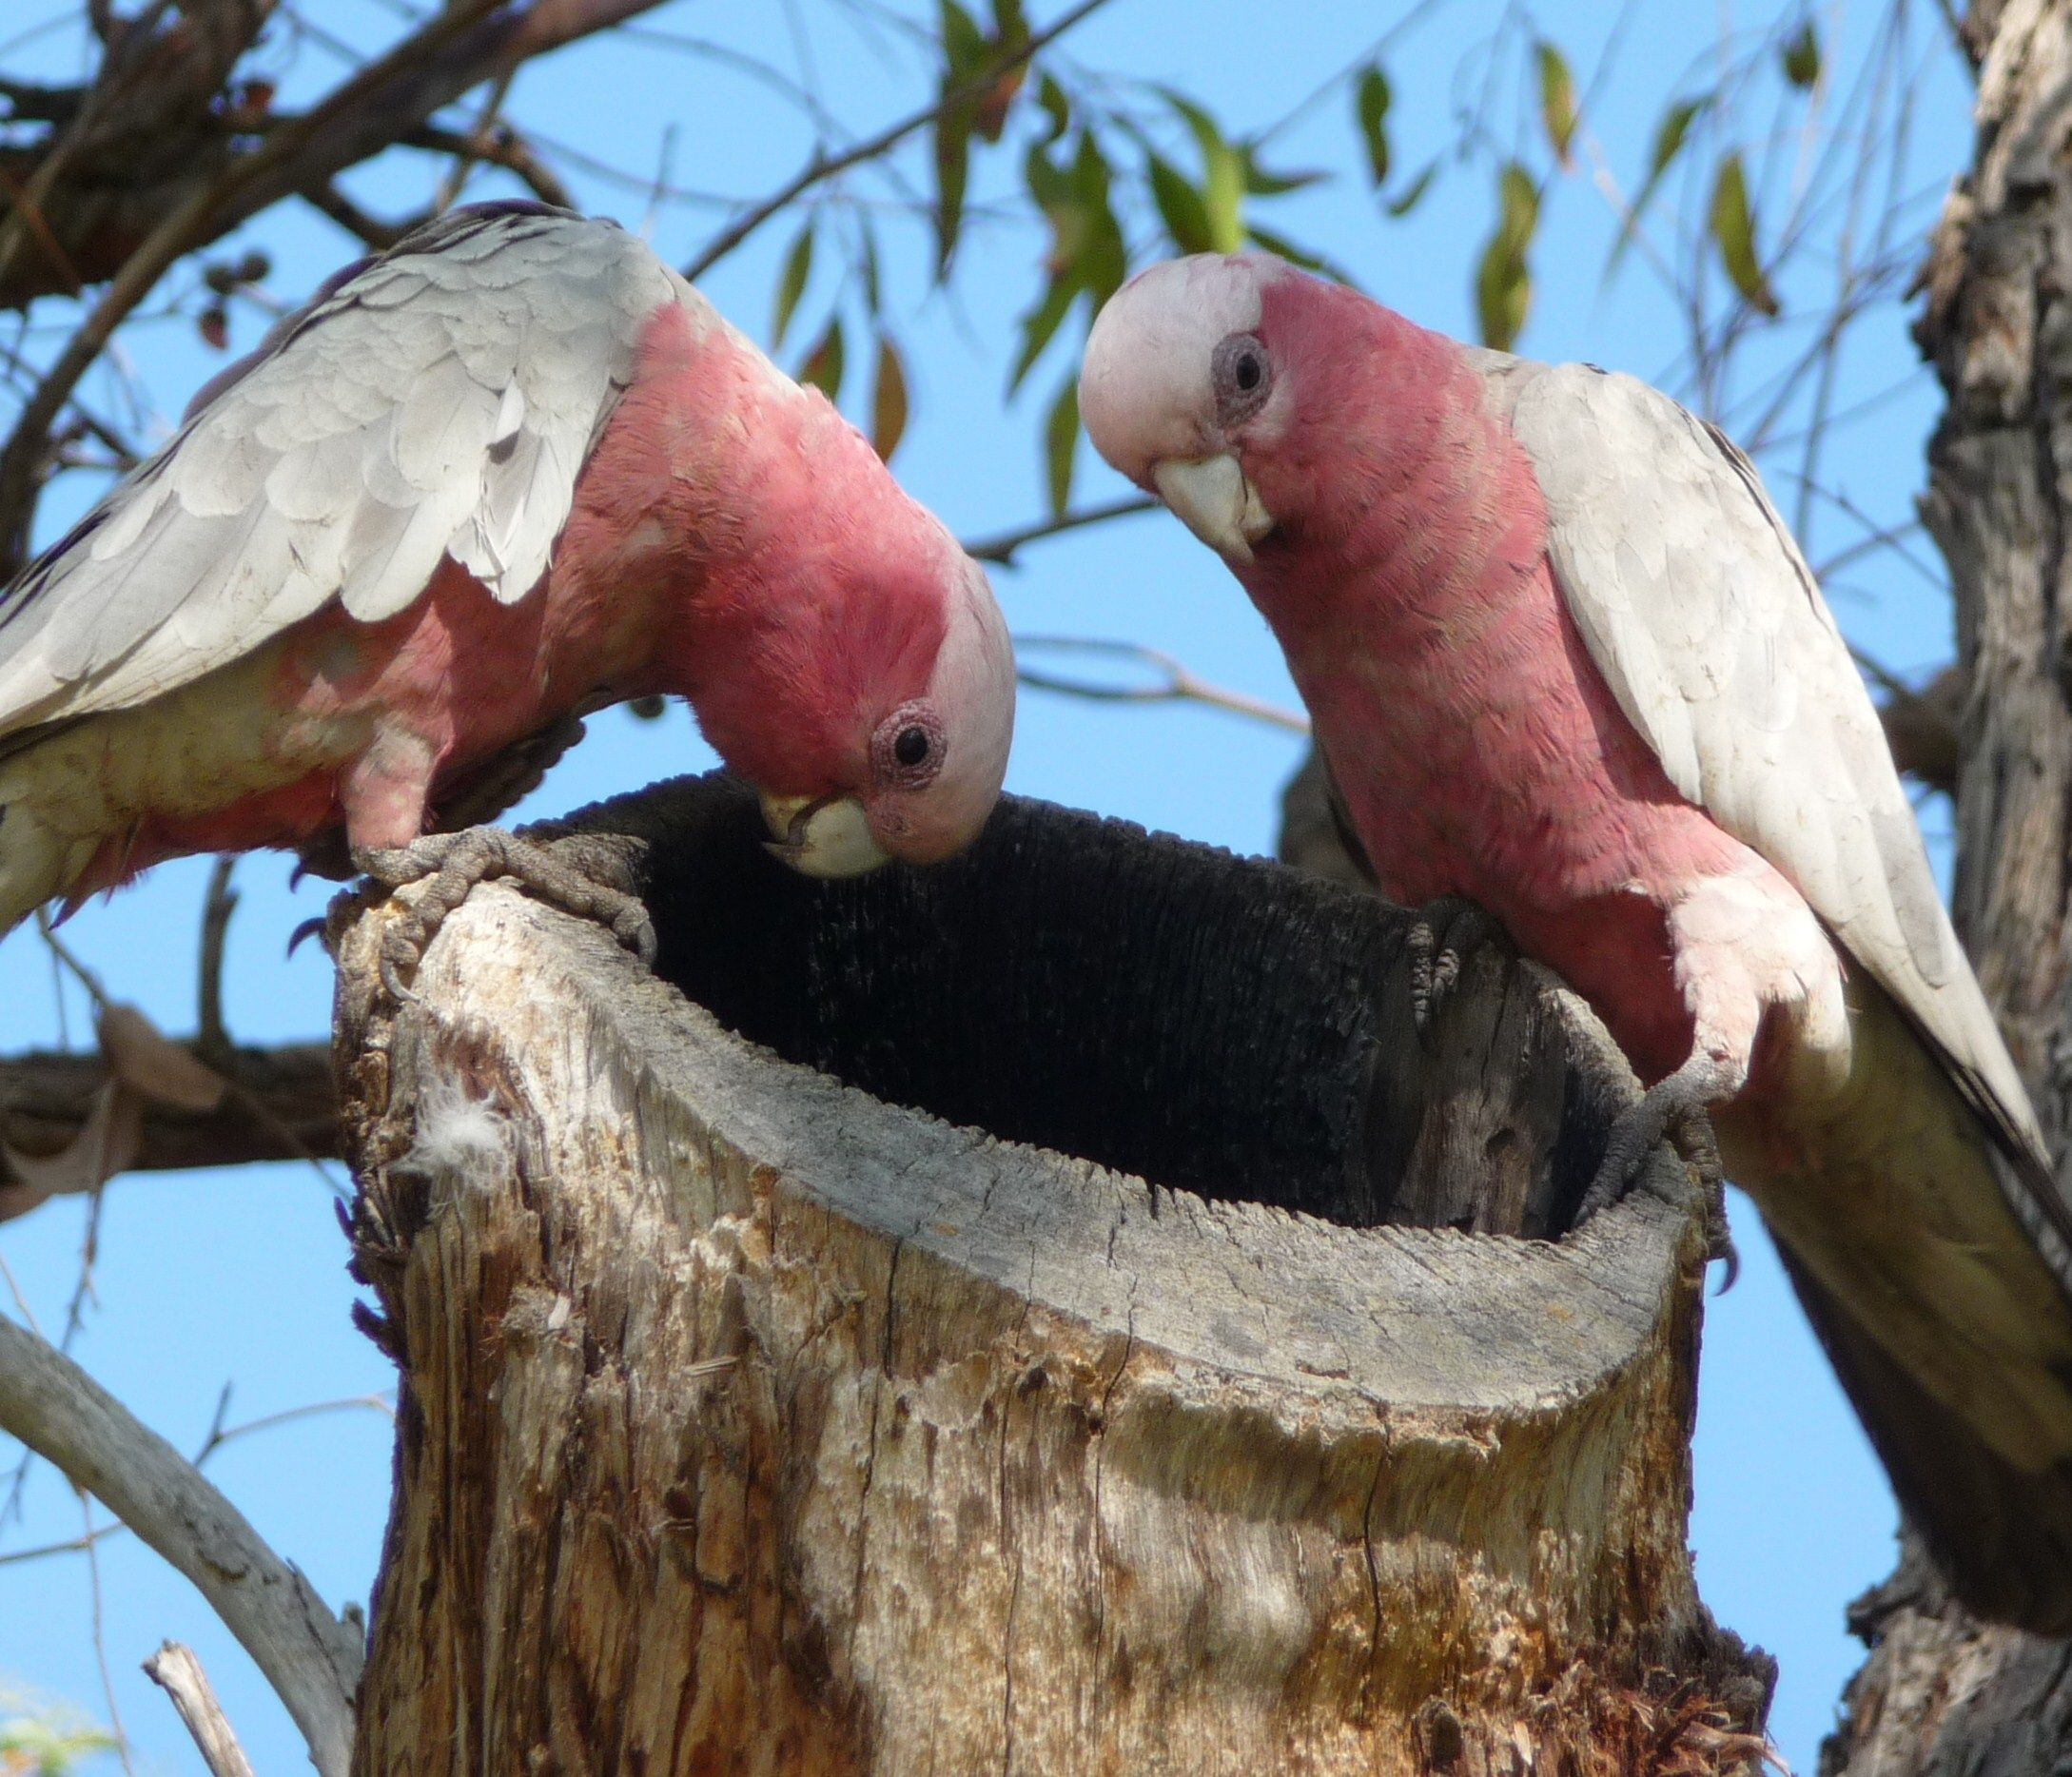 The Australian galah is common in the cities as well as